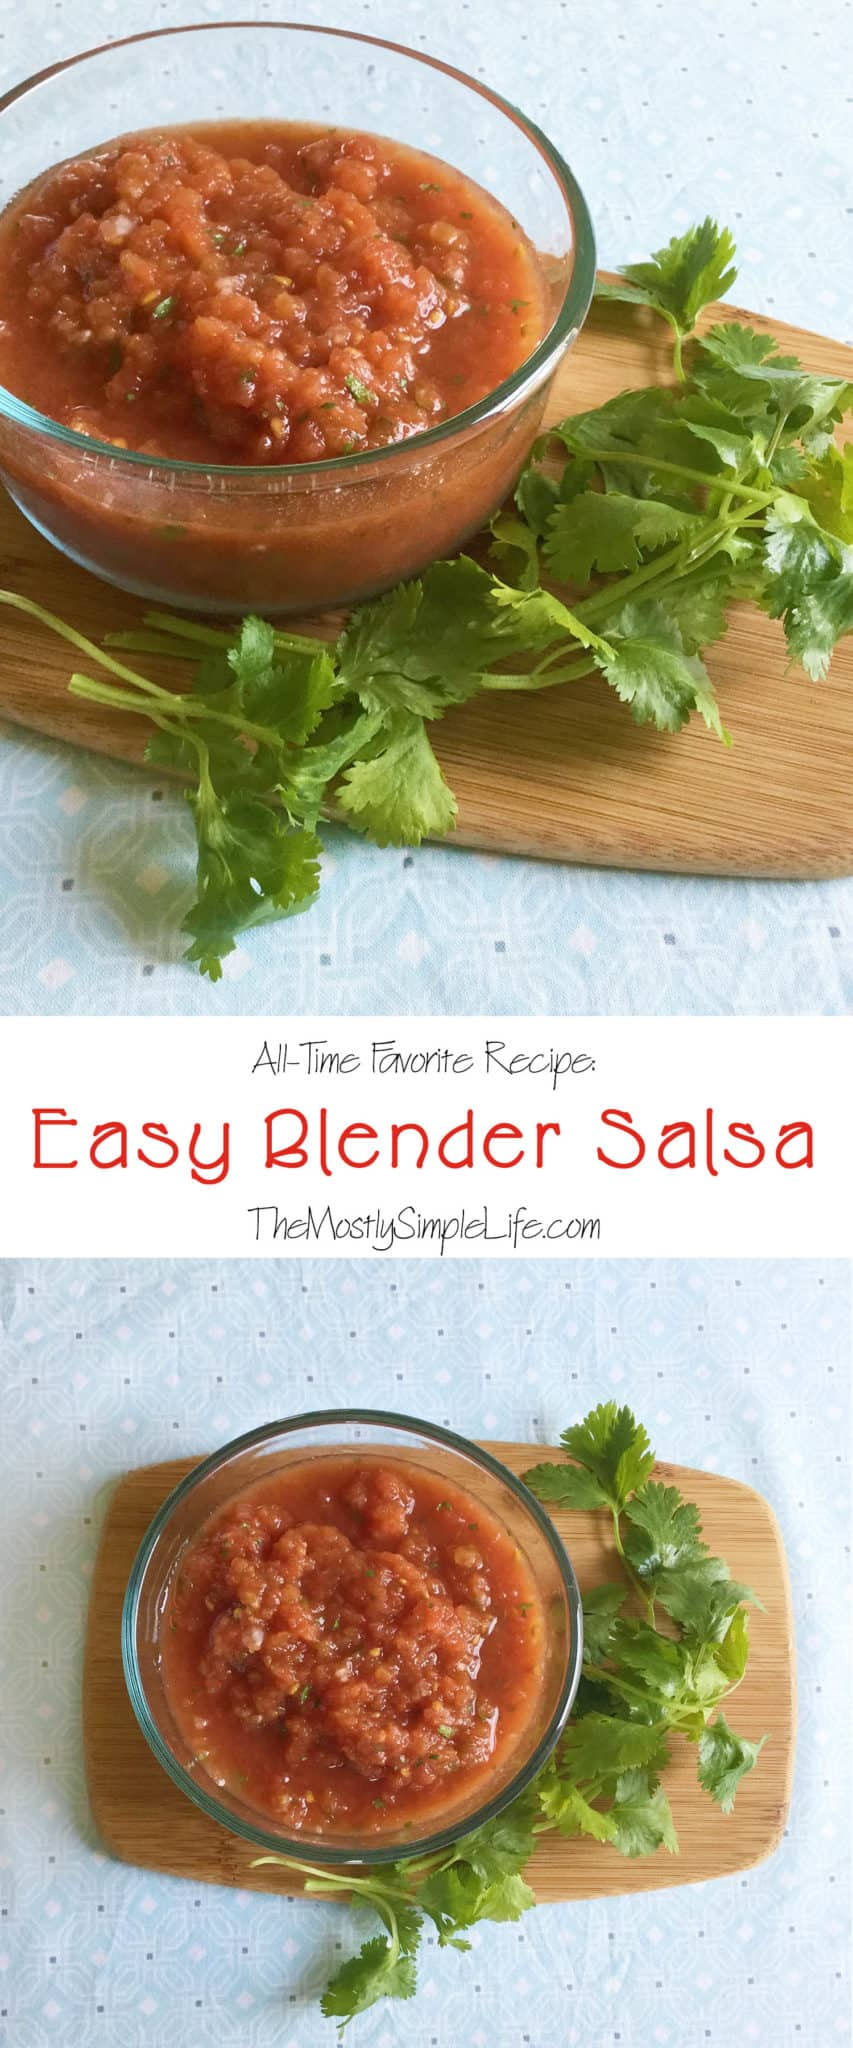 This homemade salsa recipe is my favorite! It\'s so easy and super quick to make in the blender. It tastes so fresh even though I cheat and use a few canned ingredients. I make it every time people come over and people rave about it!